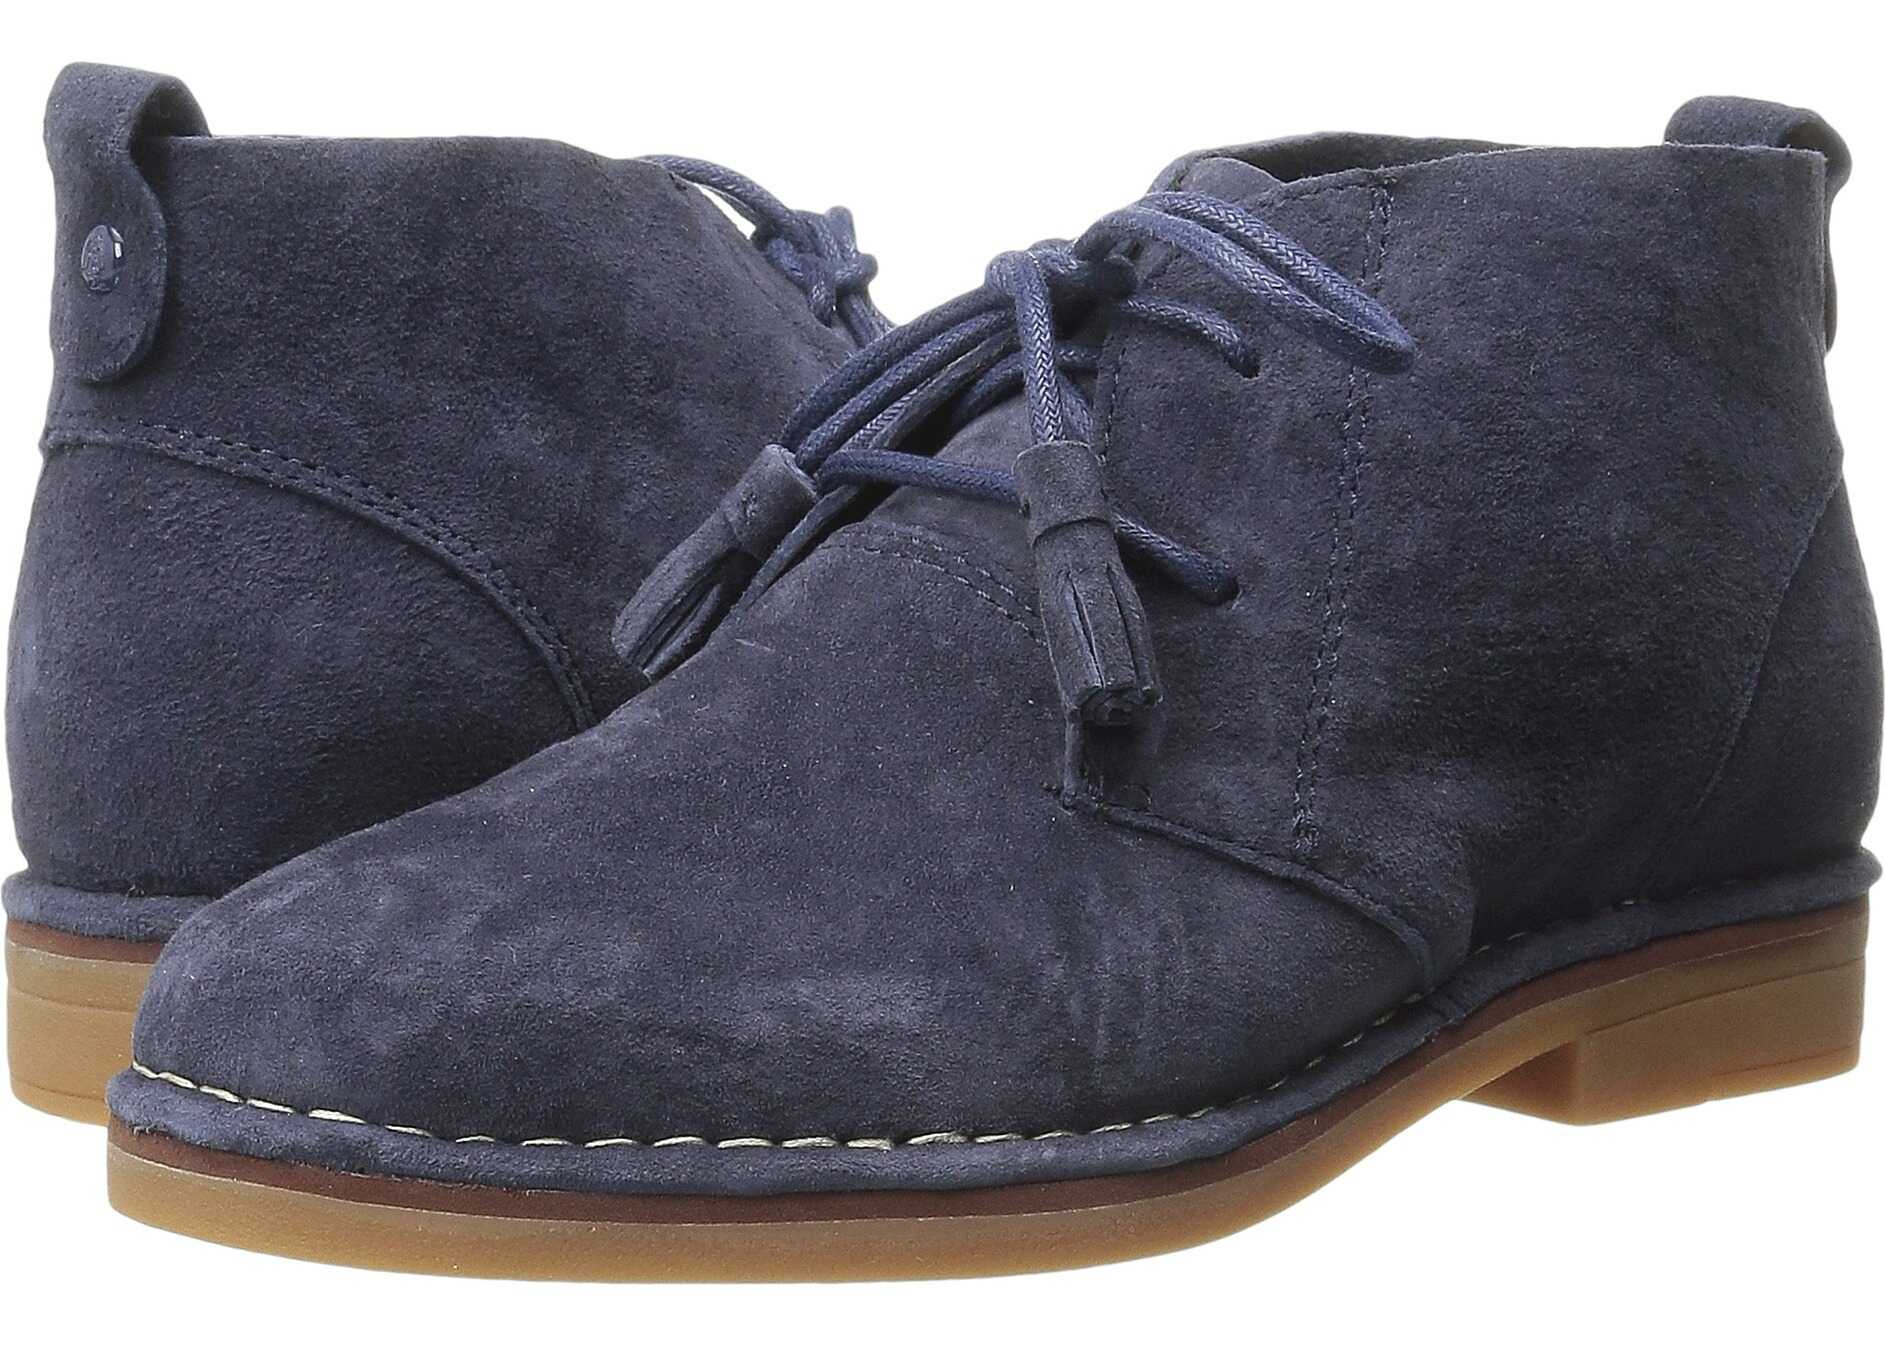 Hush Puppies Cyra Catelyn Navy Suede